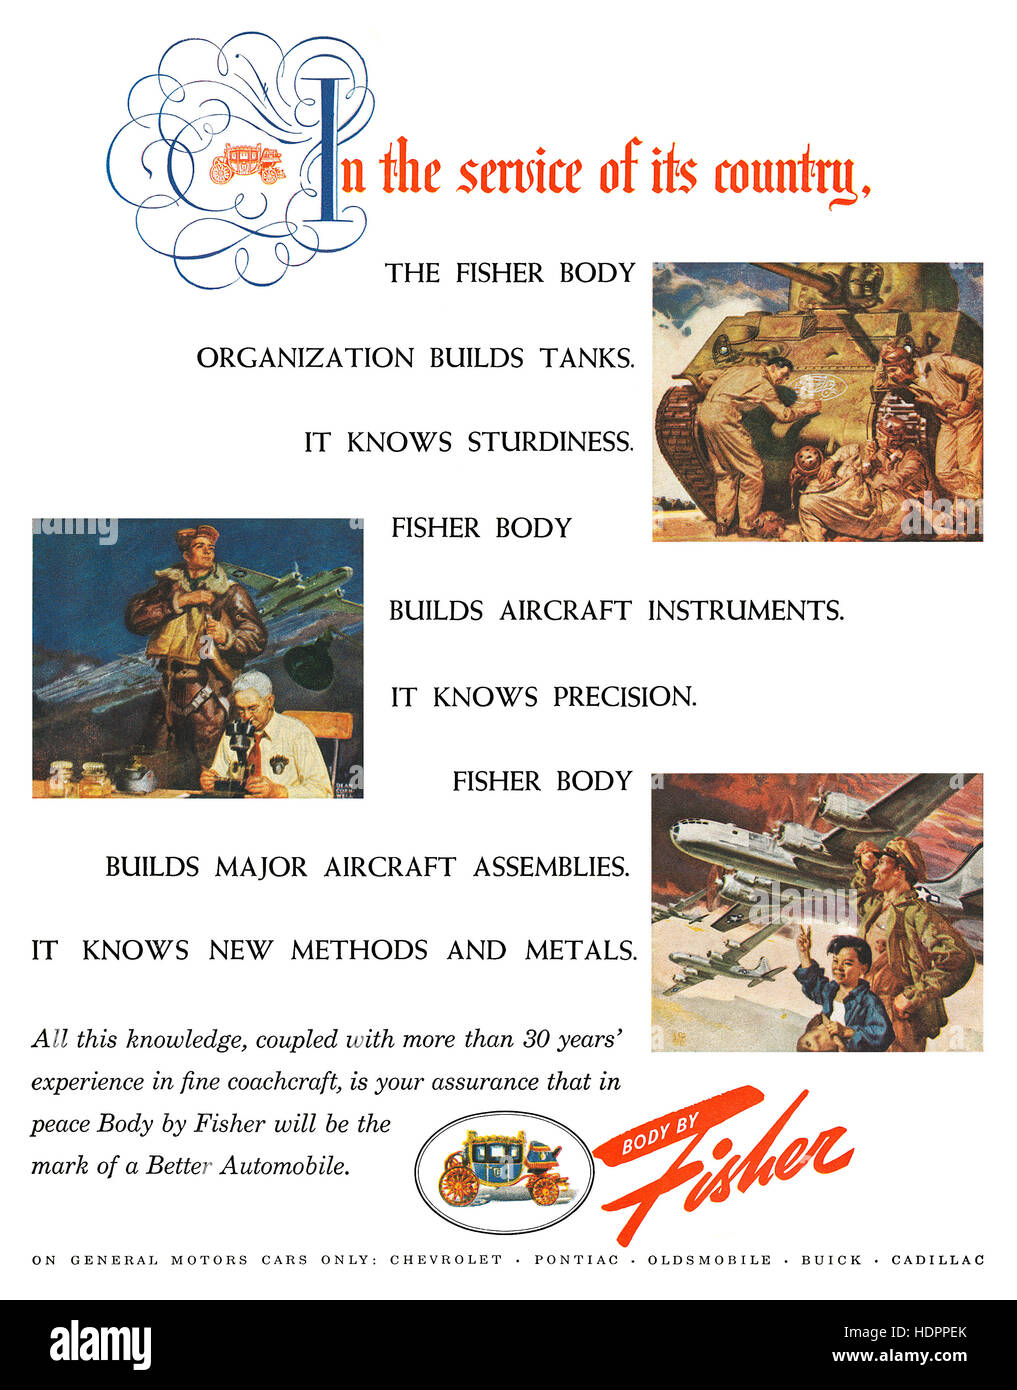 1945 U.S. wartime advertisement for Fisher Body - Stock Image